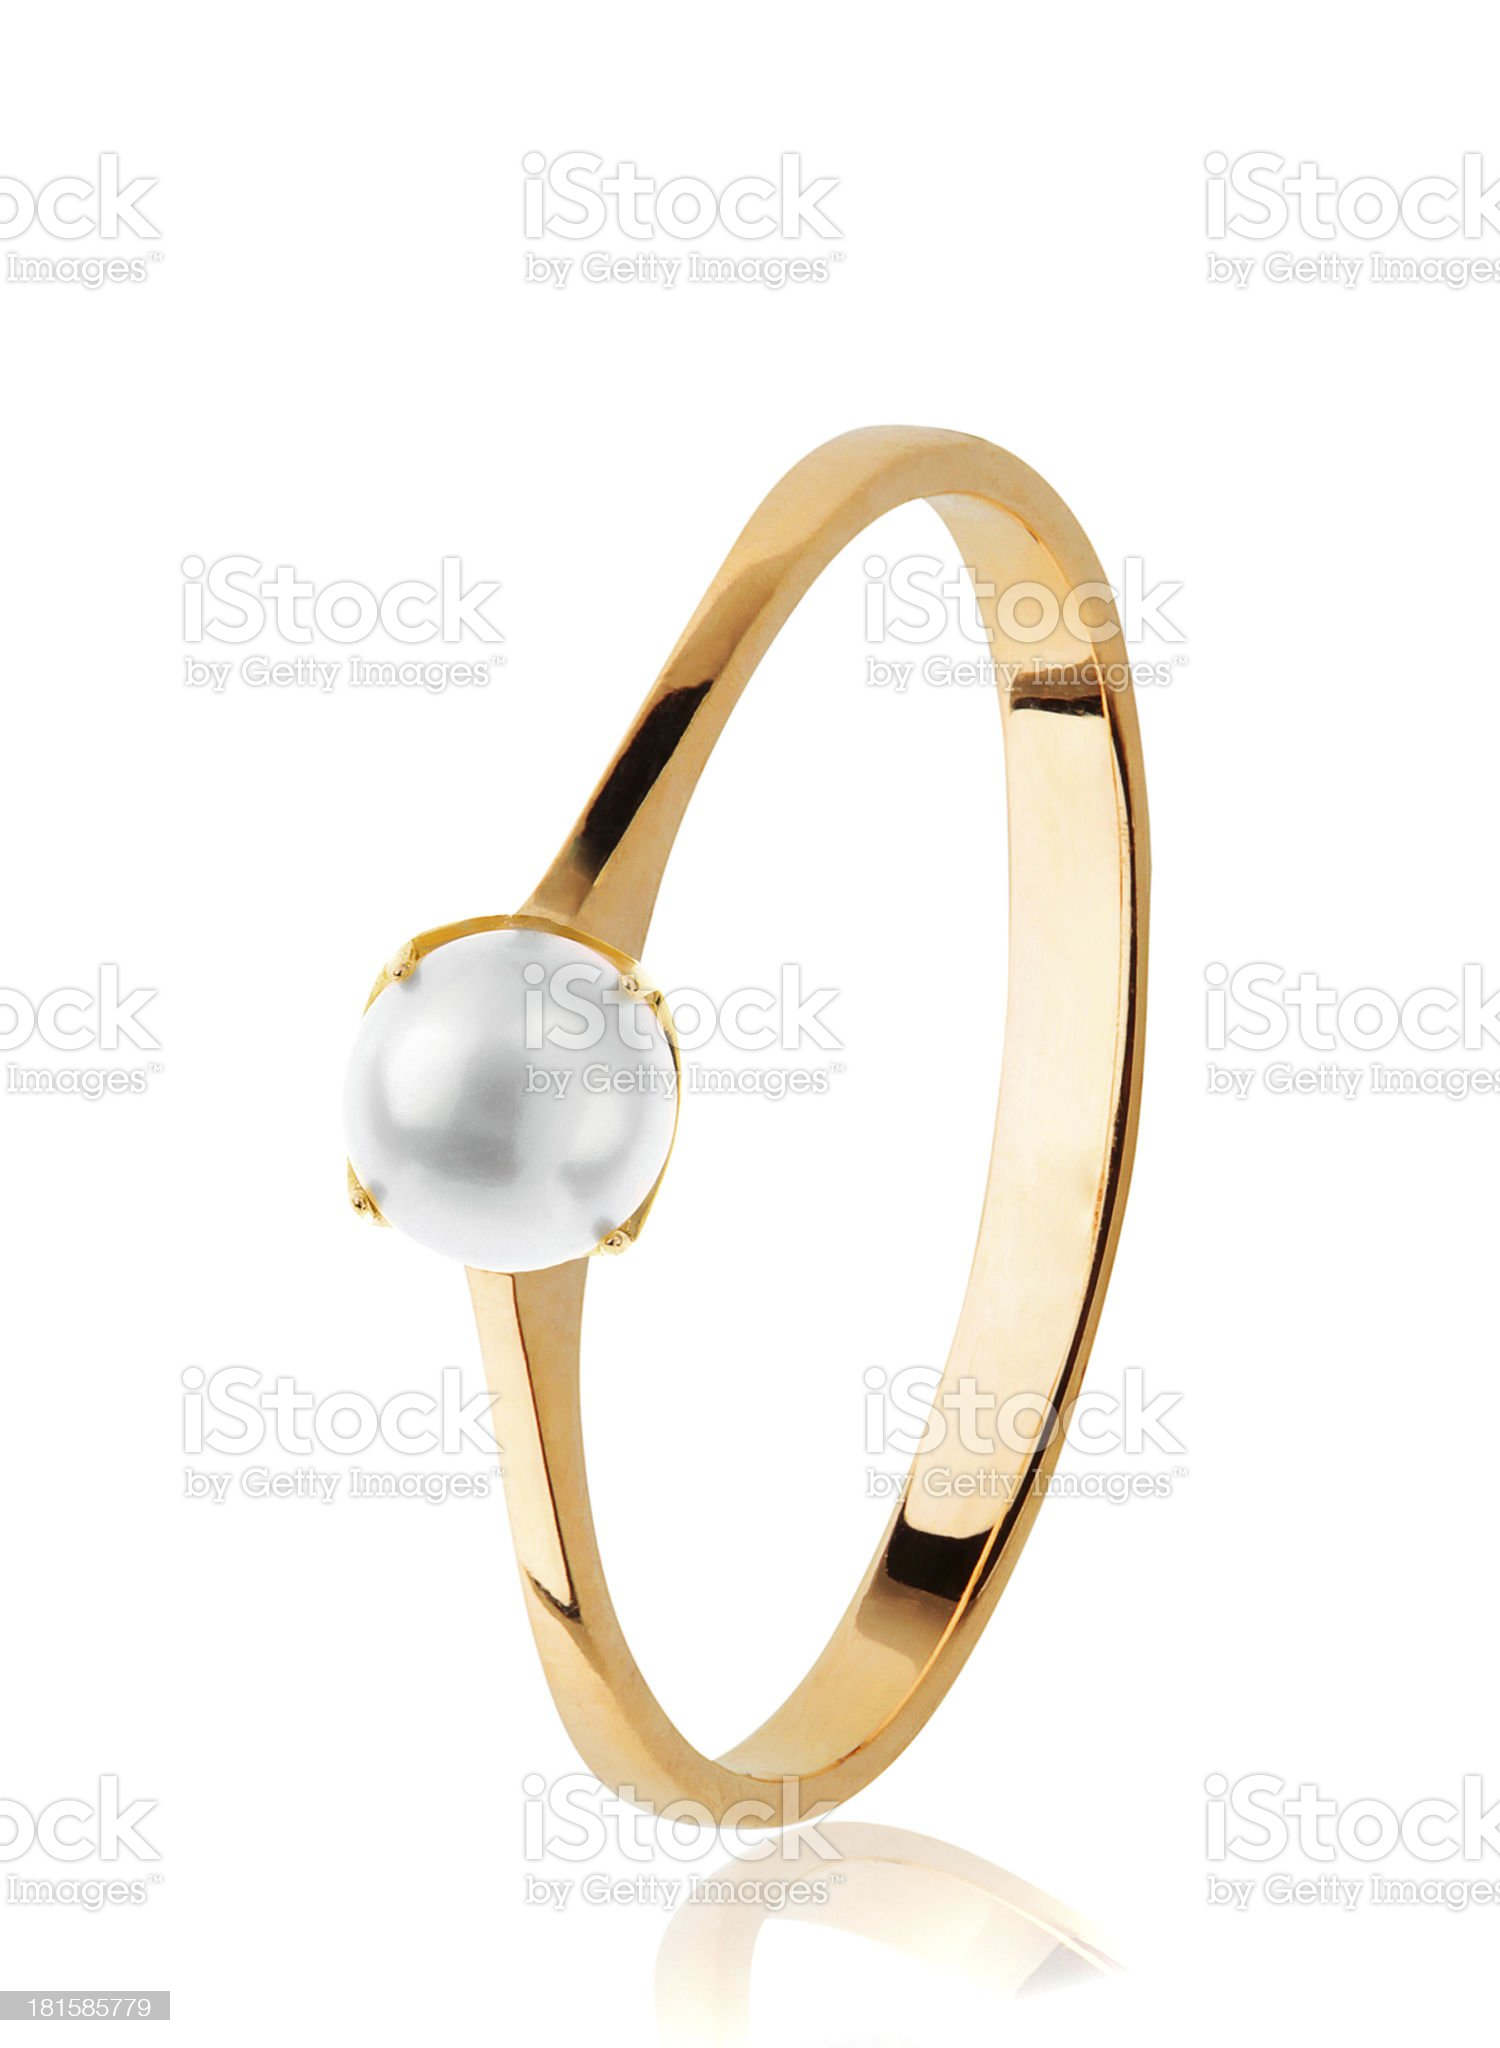 Golden Wedding Ring with pearl royalty-free stock photo